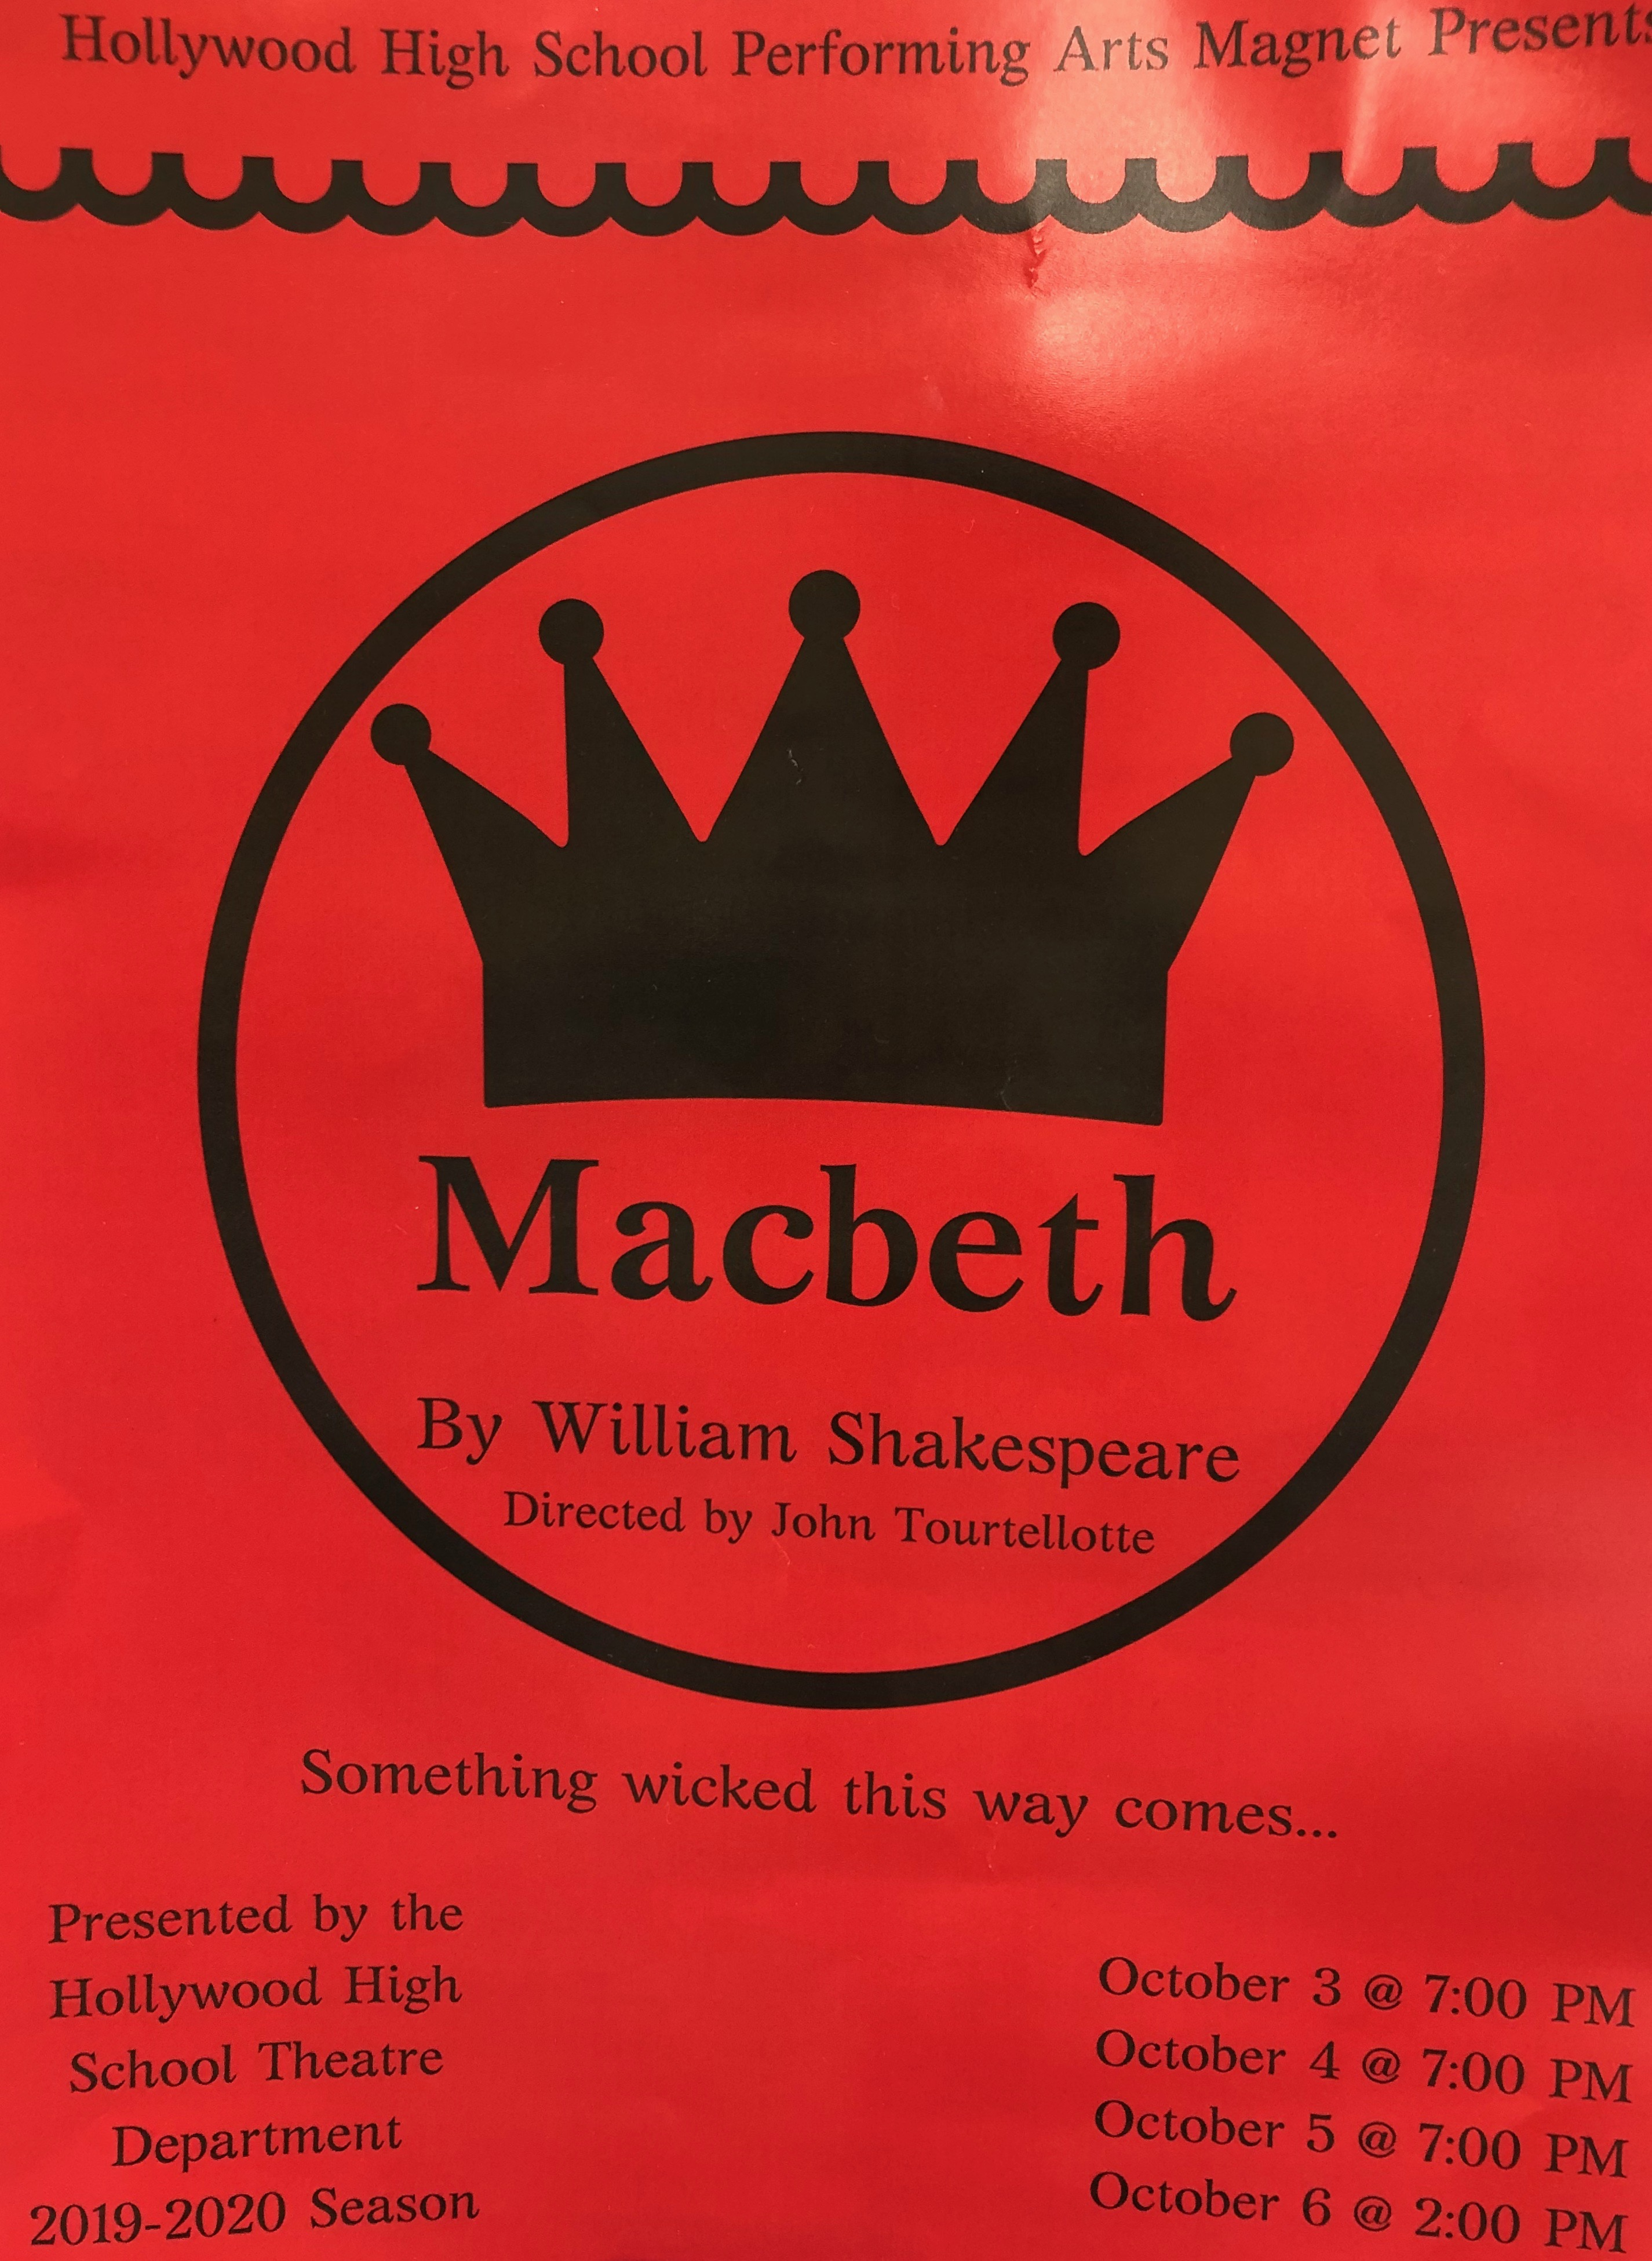 Macbeth opens on Thursday